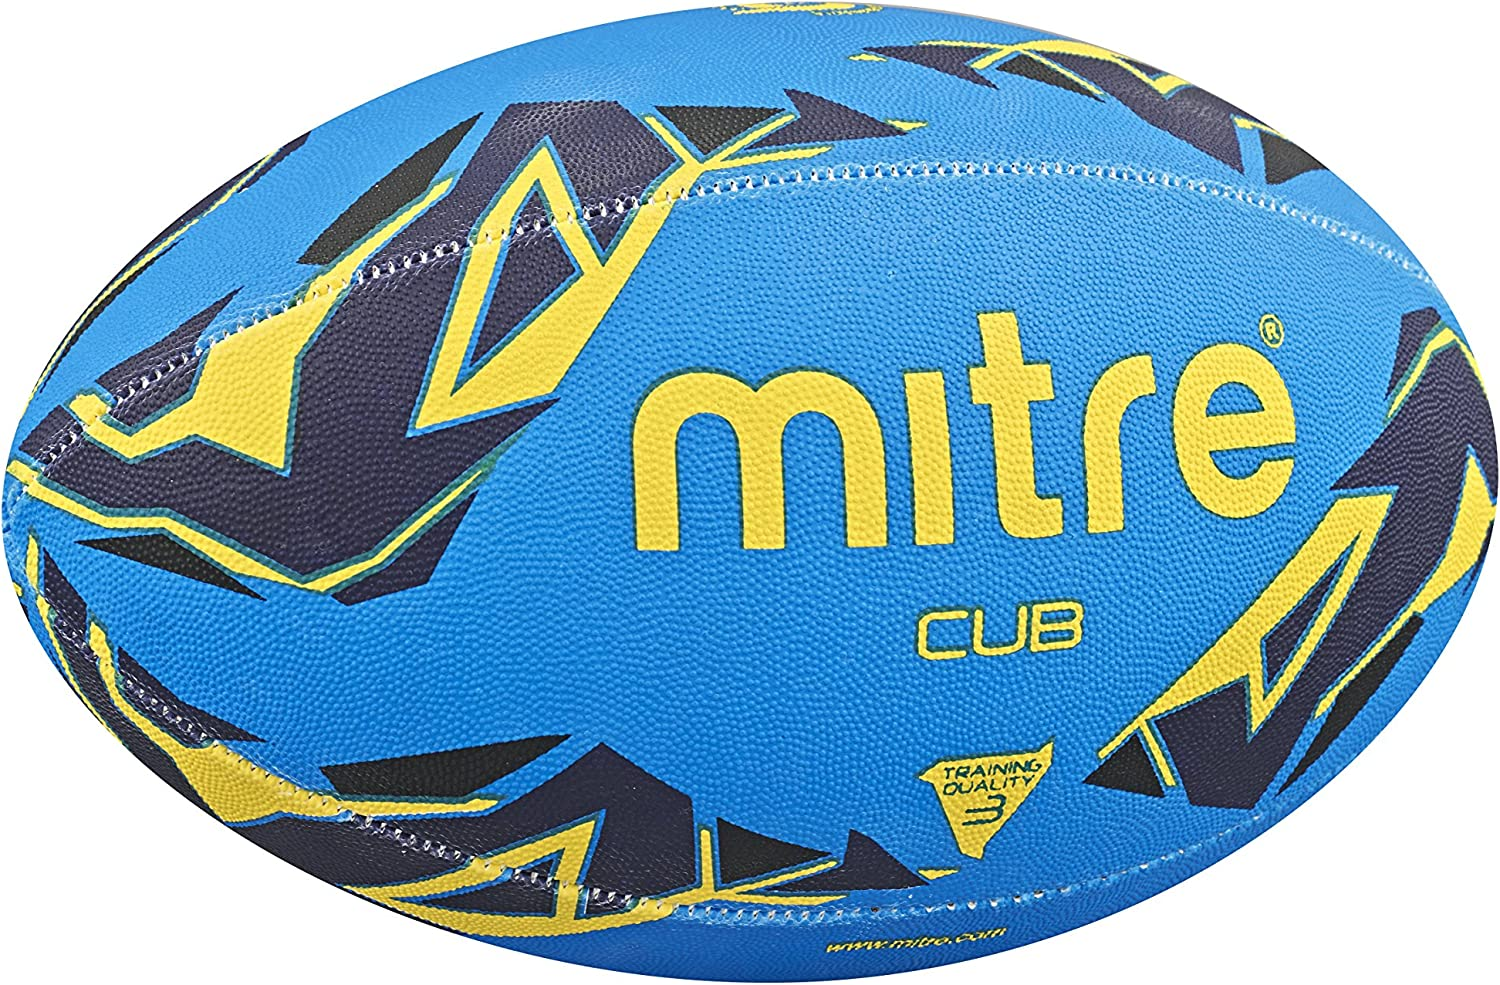 Mitre Mens Cub Training Rugby Ball - Blue/Navy/Yellow, Size 3 ...